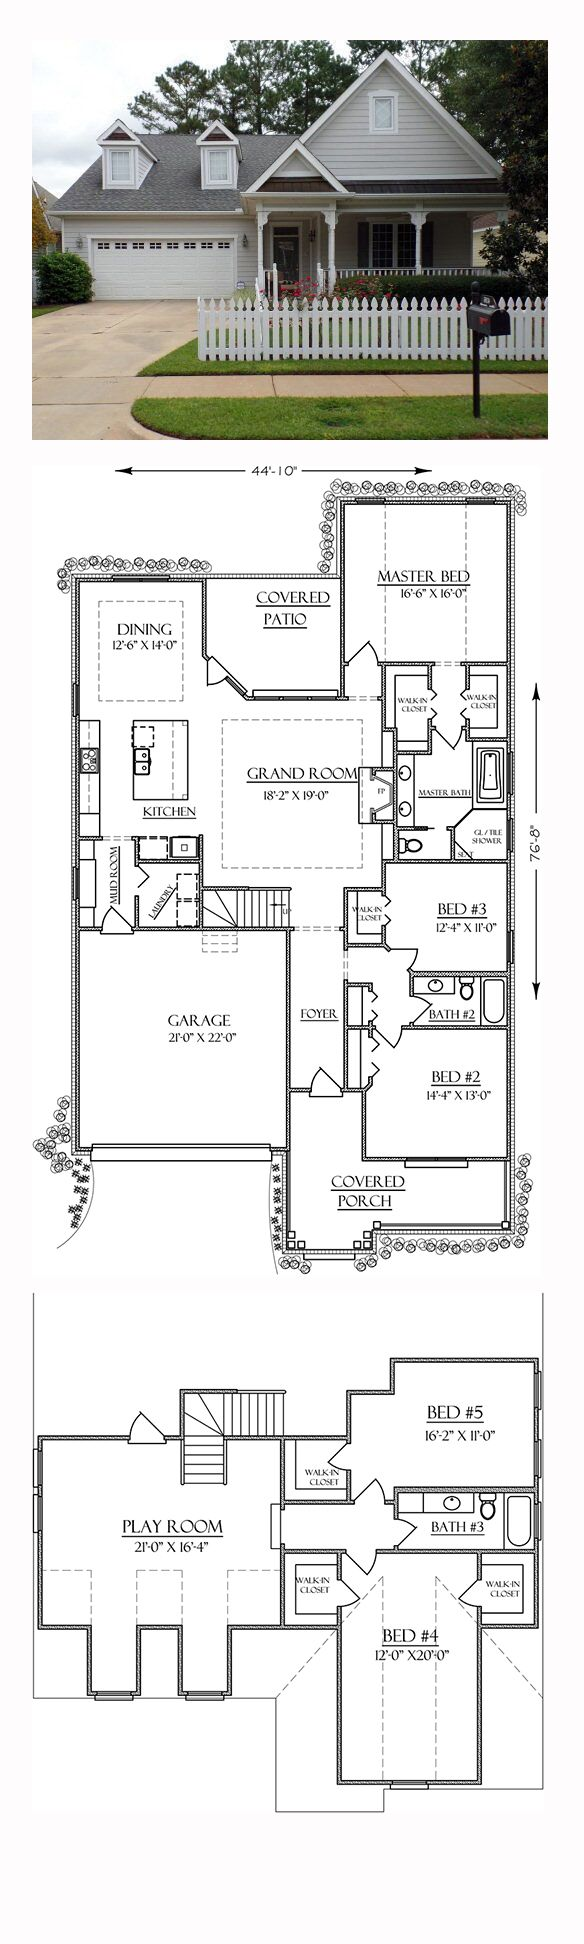 New house plan 74756 total living area 3162 sq 5 bedrooms and 3 bathrooms